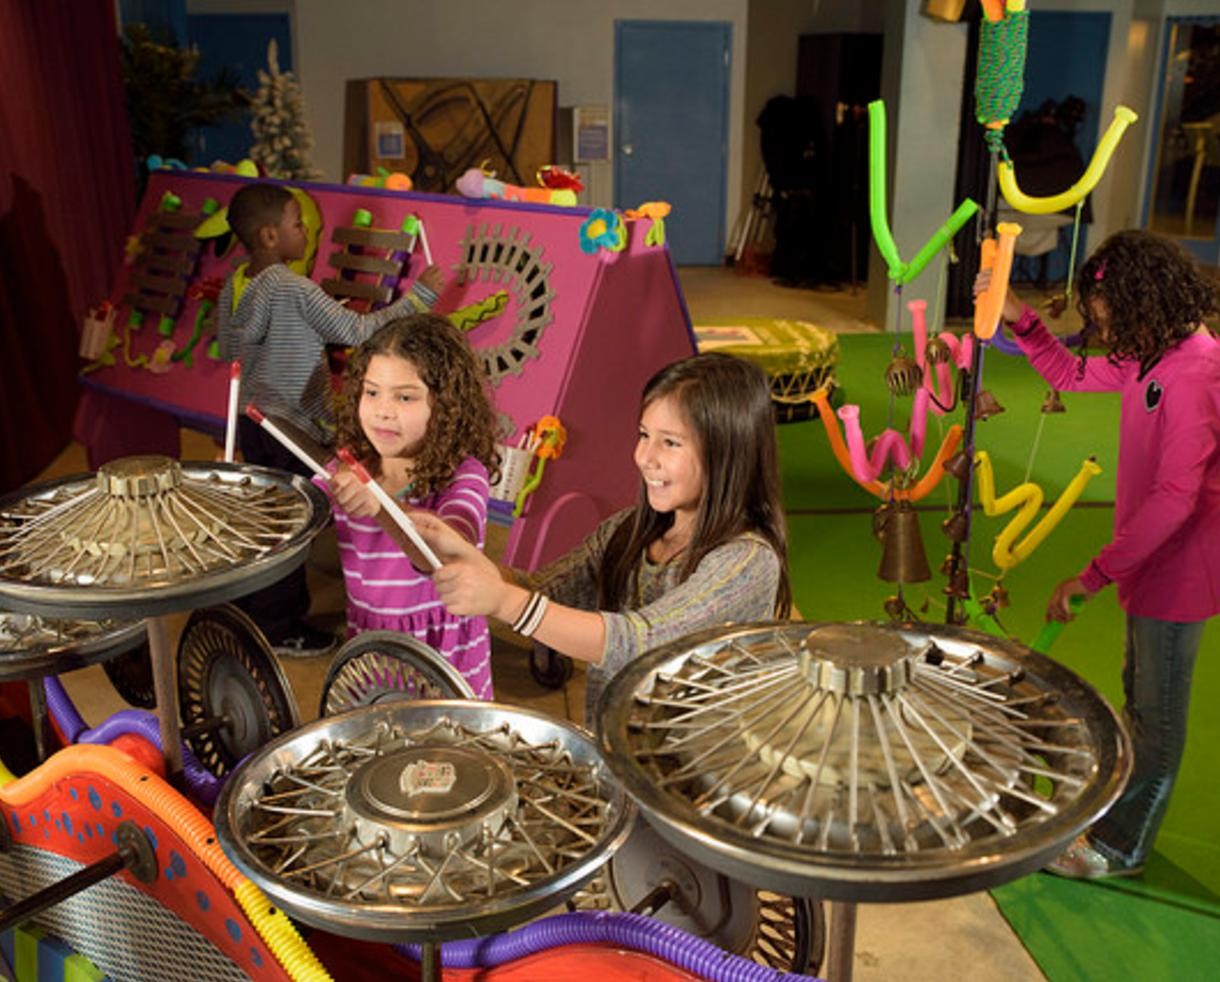 Port Discovery Children's Museum Admission